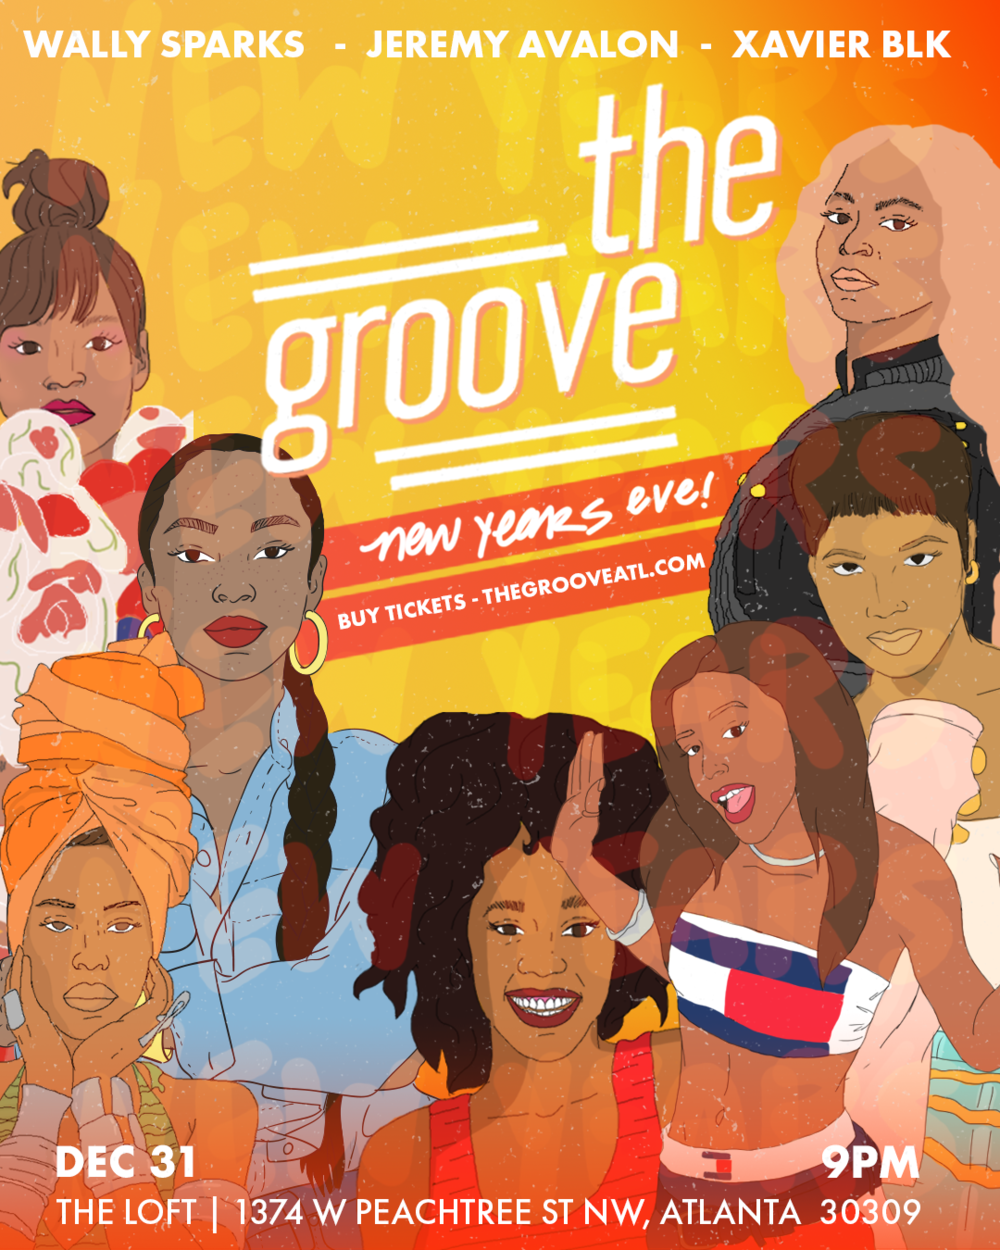 001-the-groove-nye-main.png